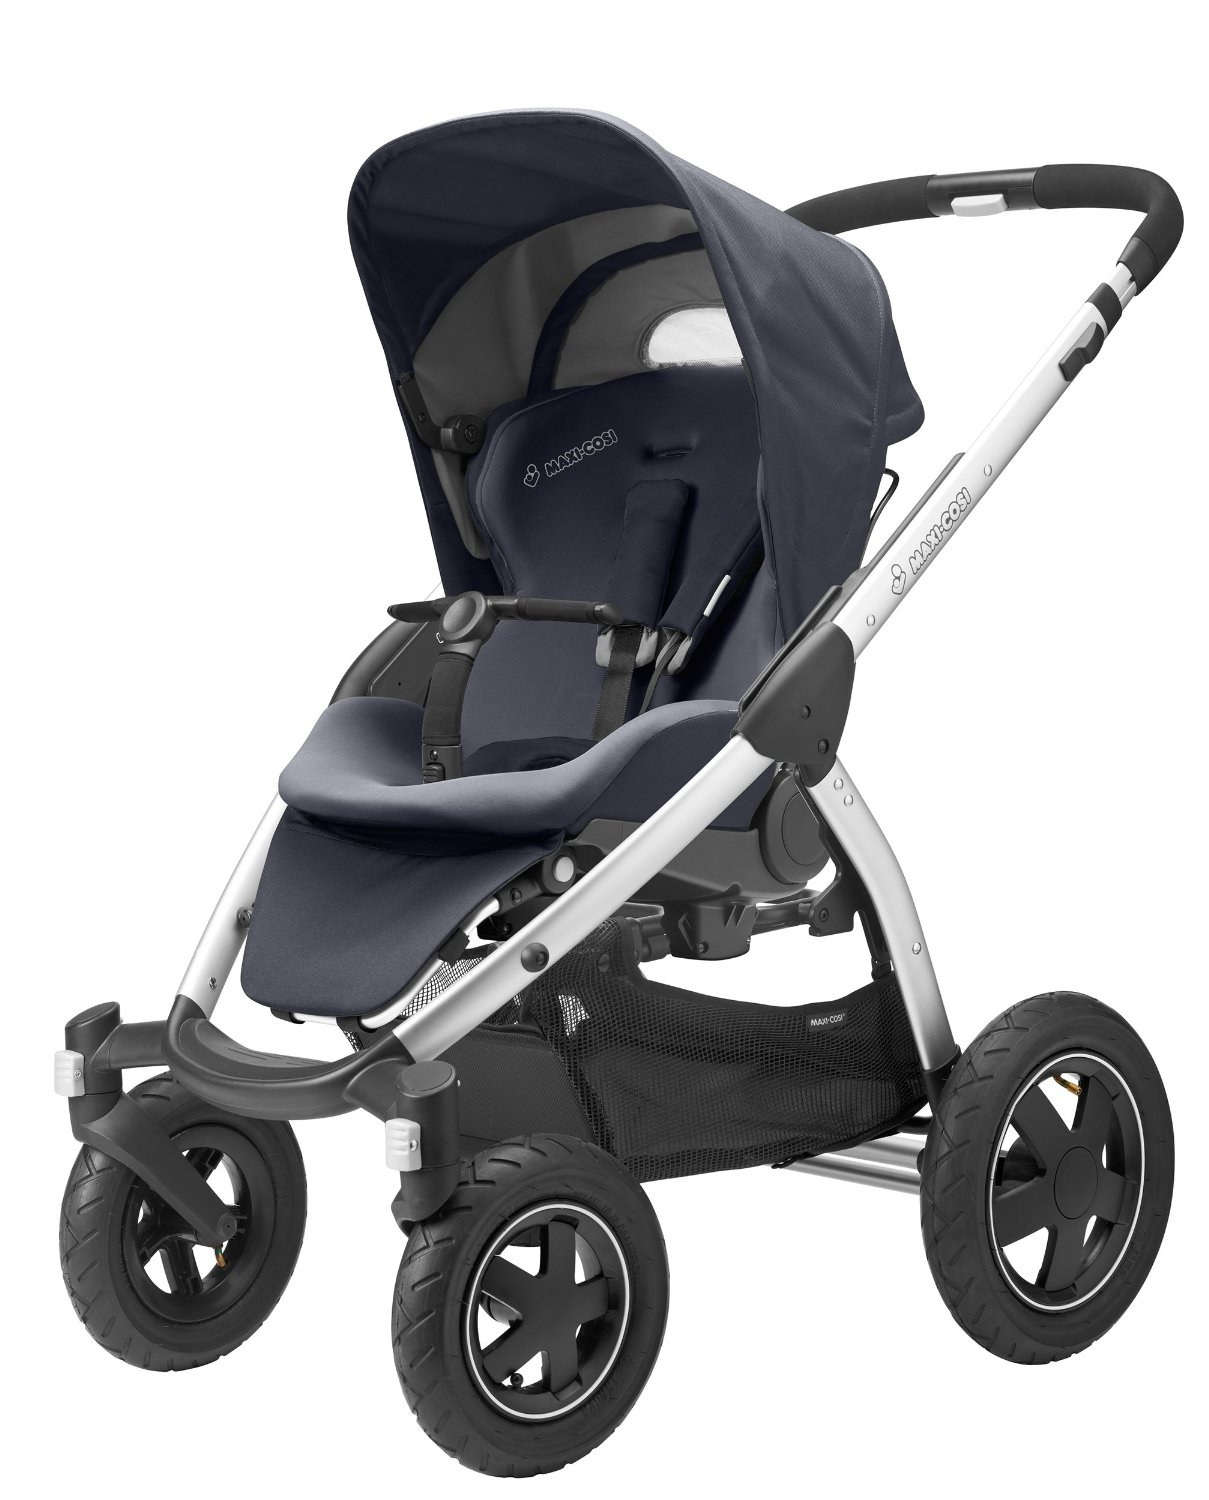 maxi cosi kinderwagen der mura 4 set im vergleich viele infos. Black Bedroom Furniture Sets. Home Design Ideas